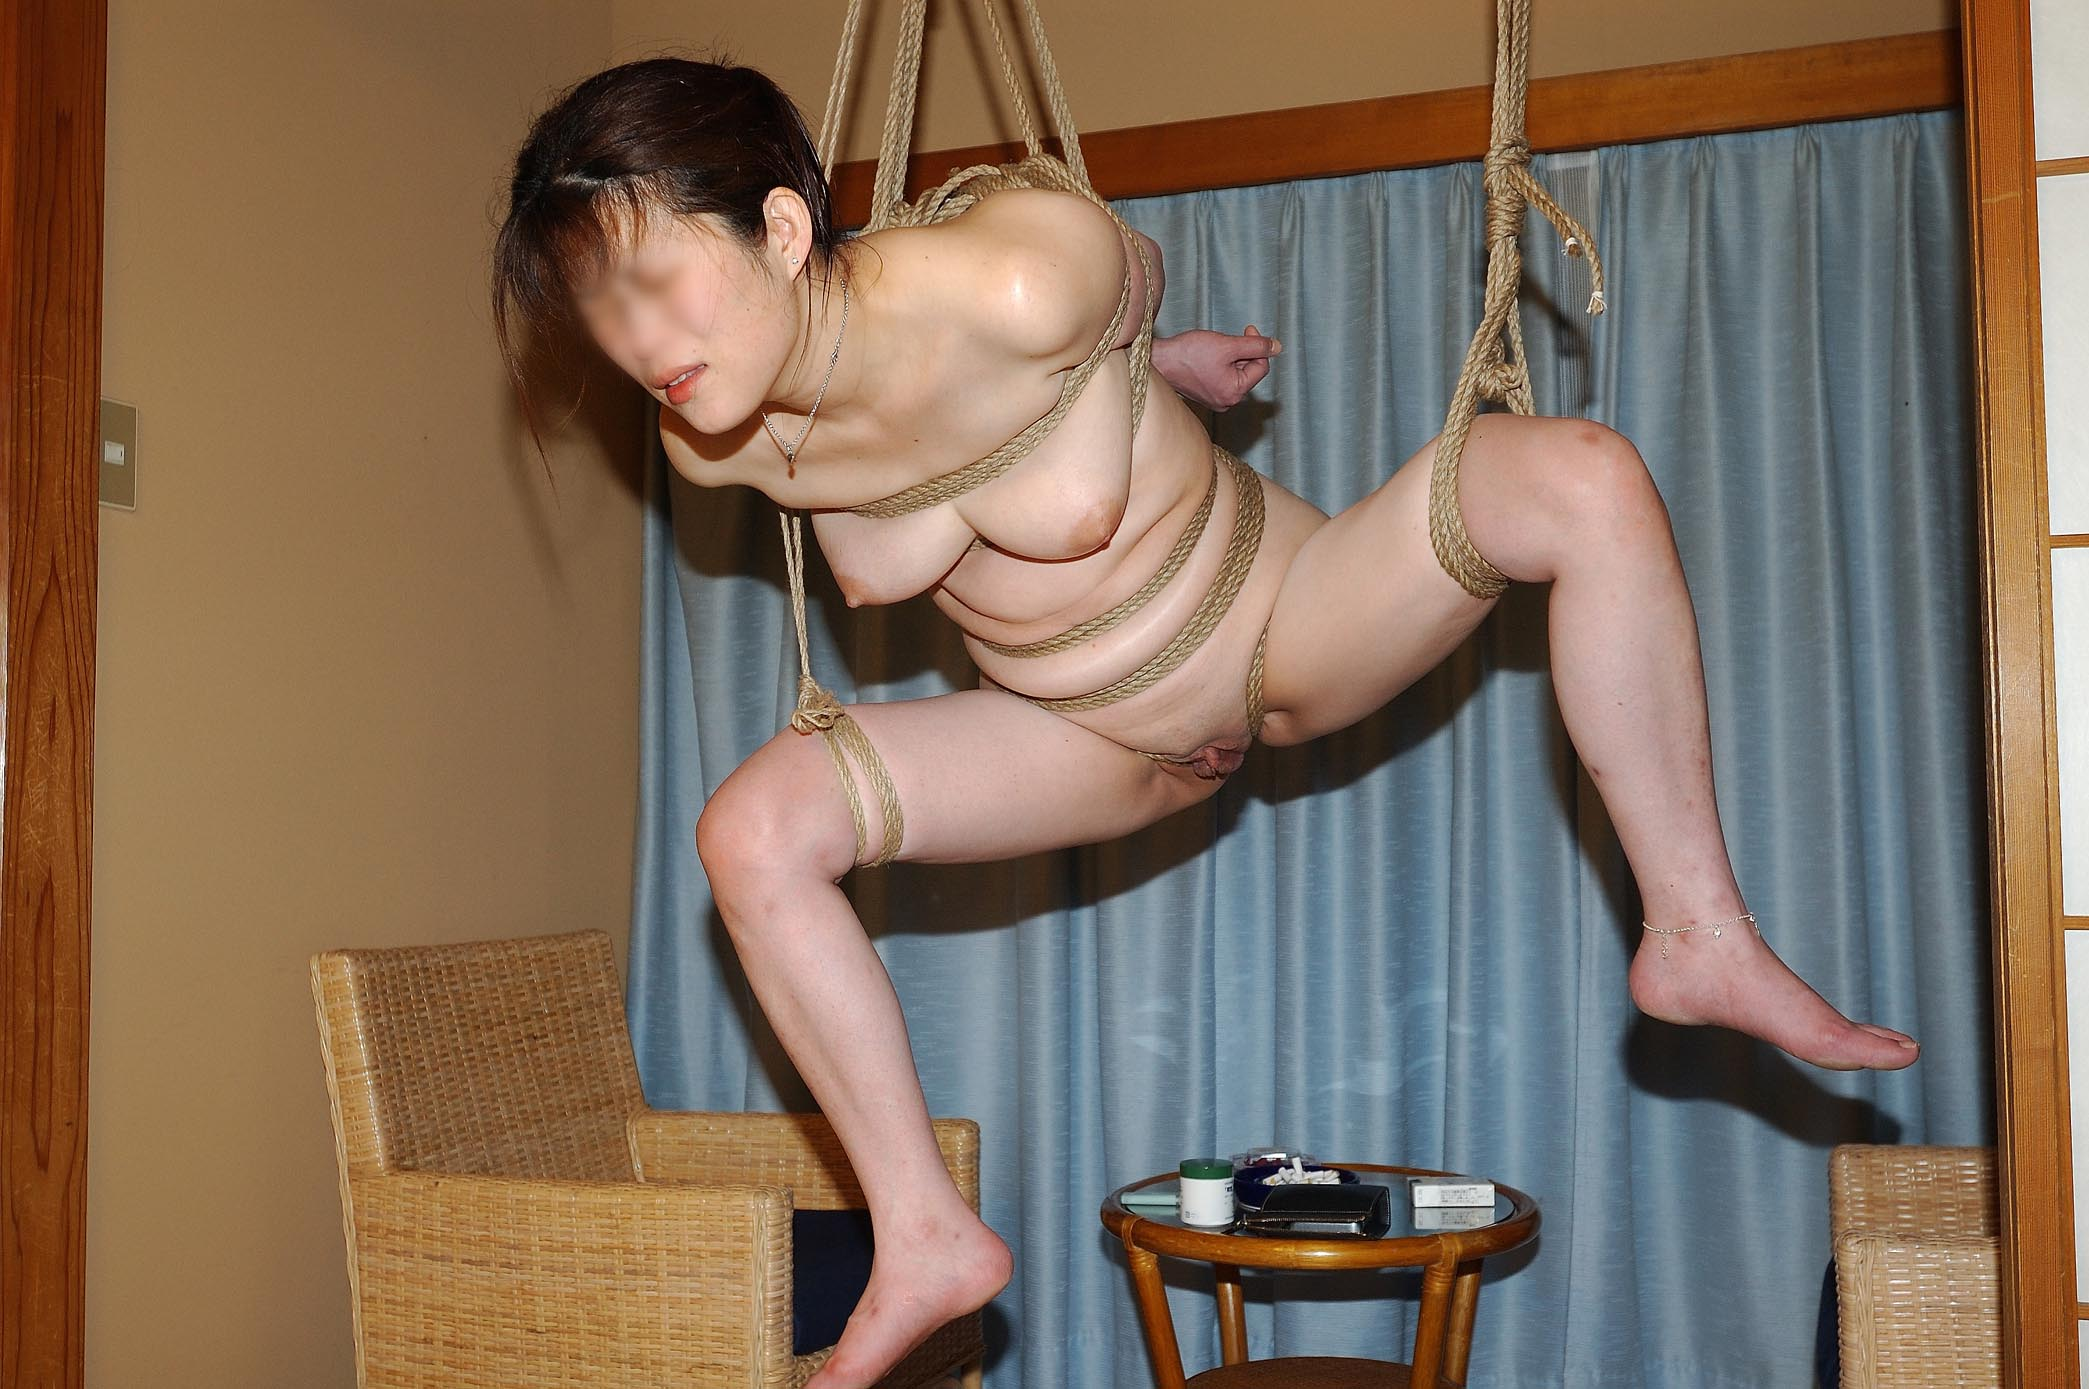 _; this japanese bondage world like her blowjob